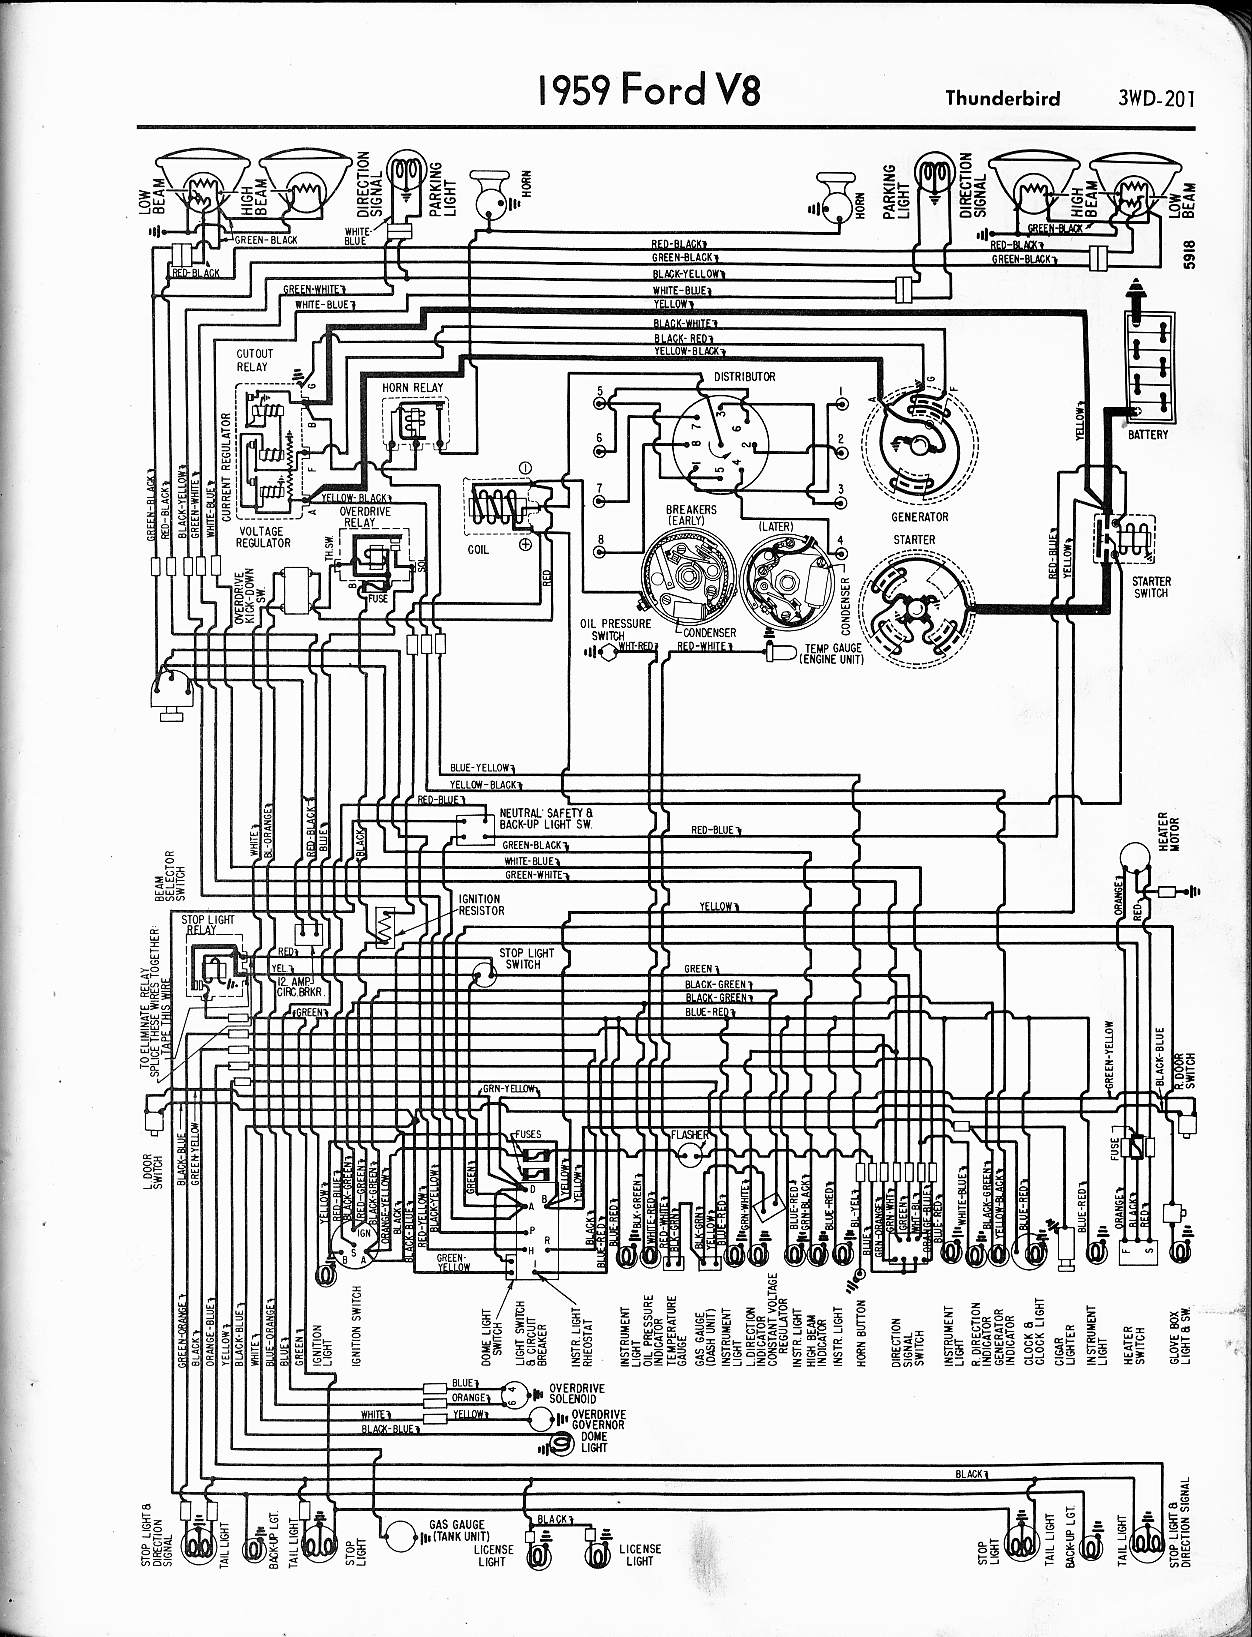 ford wiring diagrams 1959 thunderbird